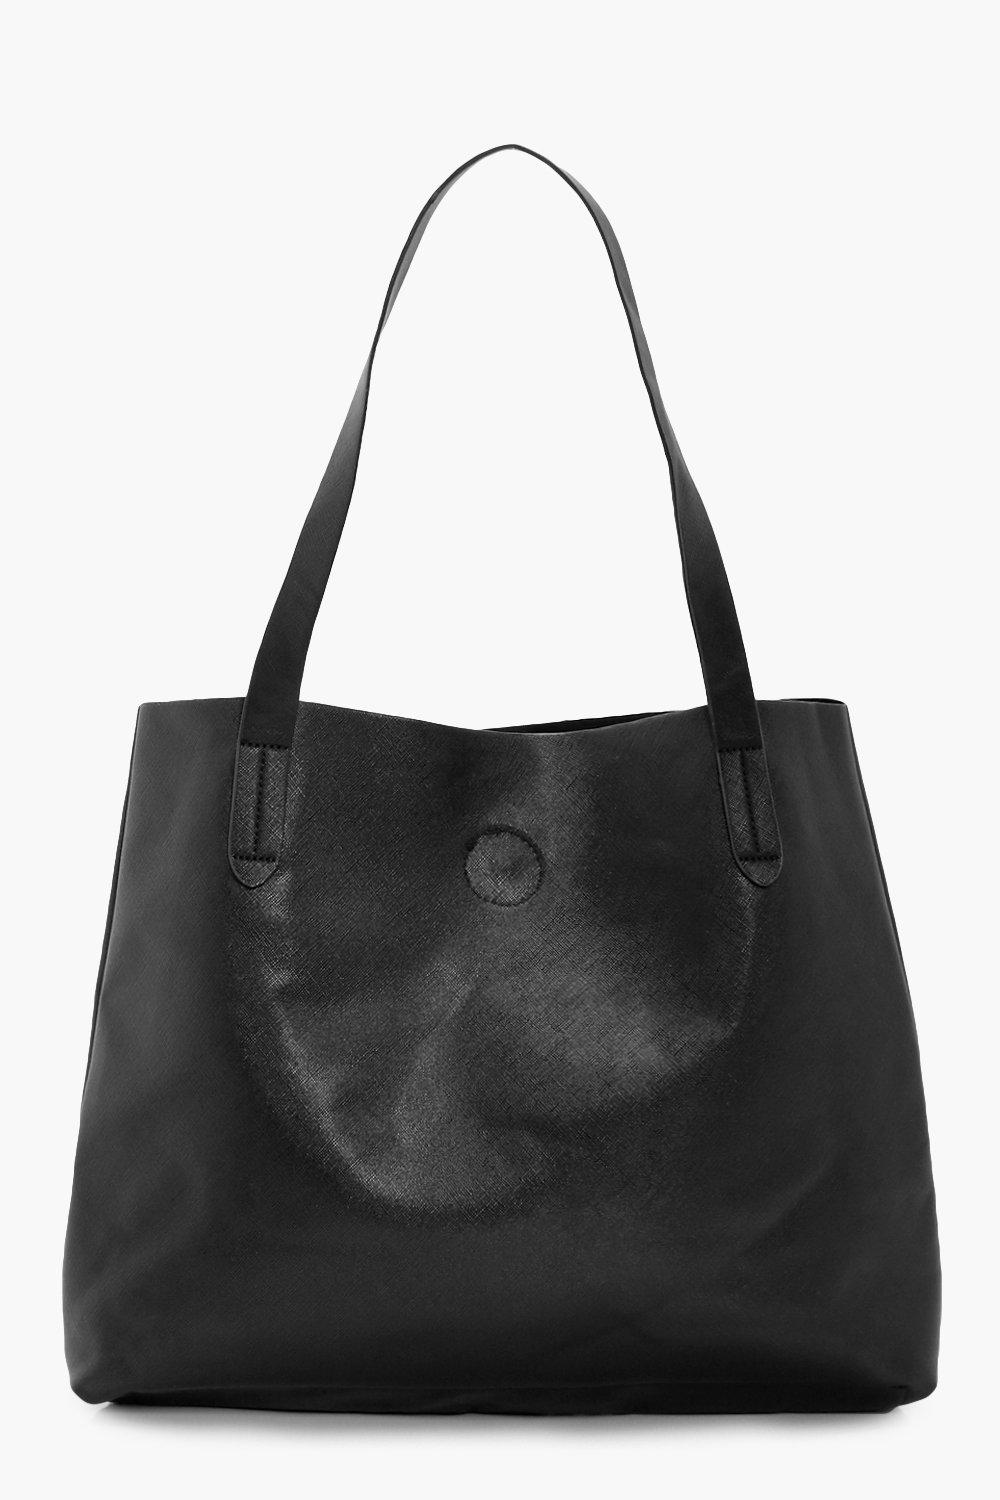 Crosshatch Popper Shopper - black - Hettie Crossha